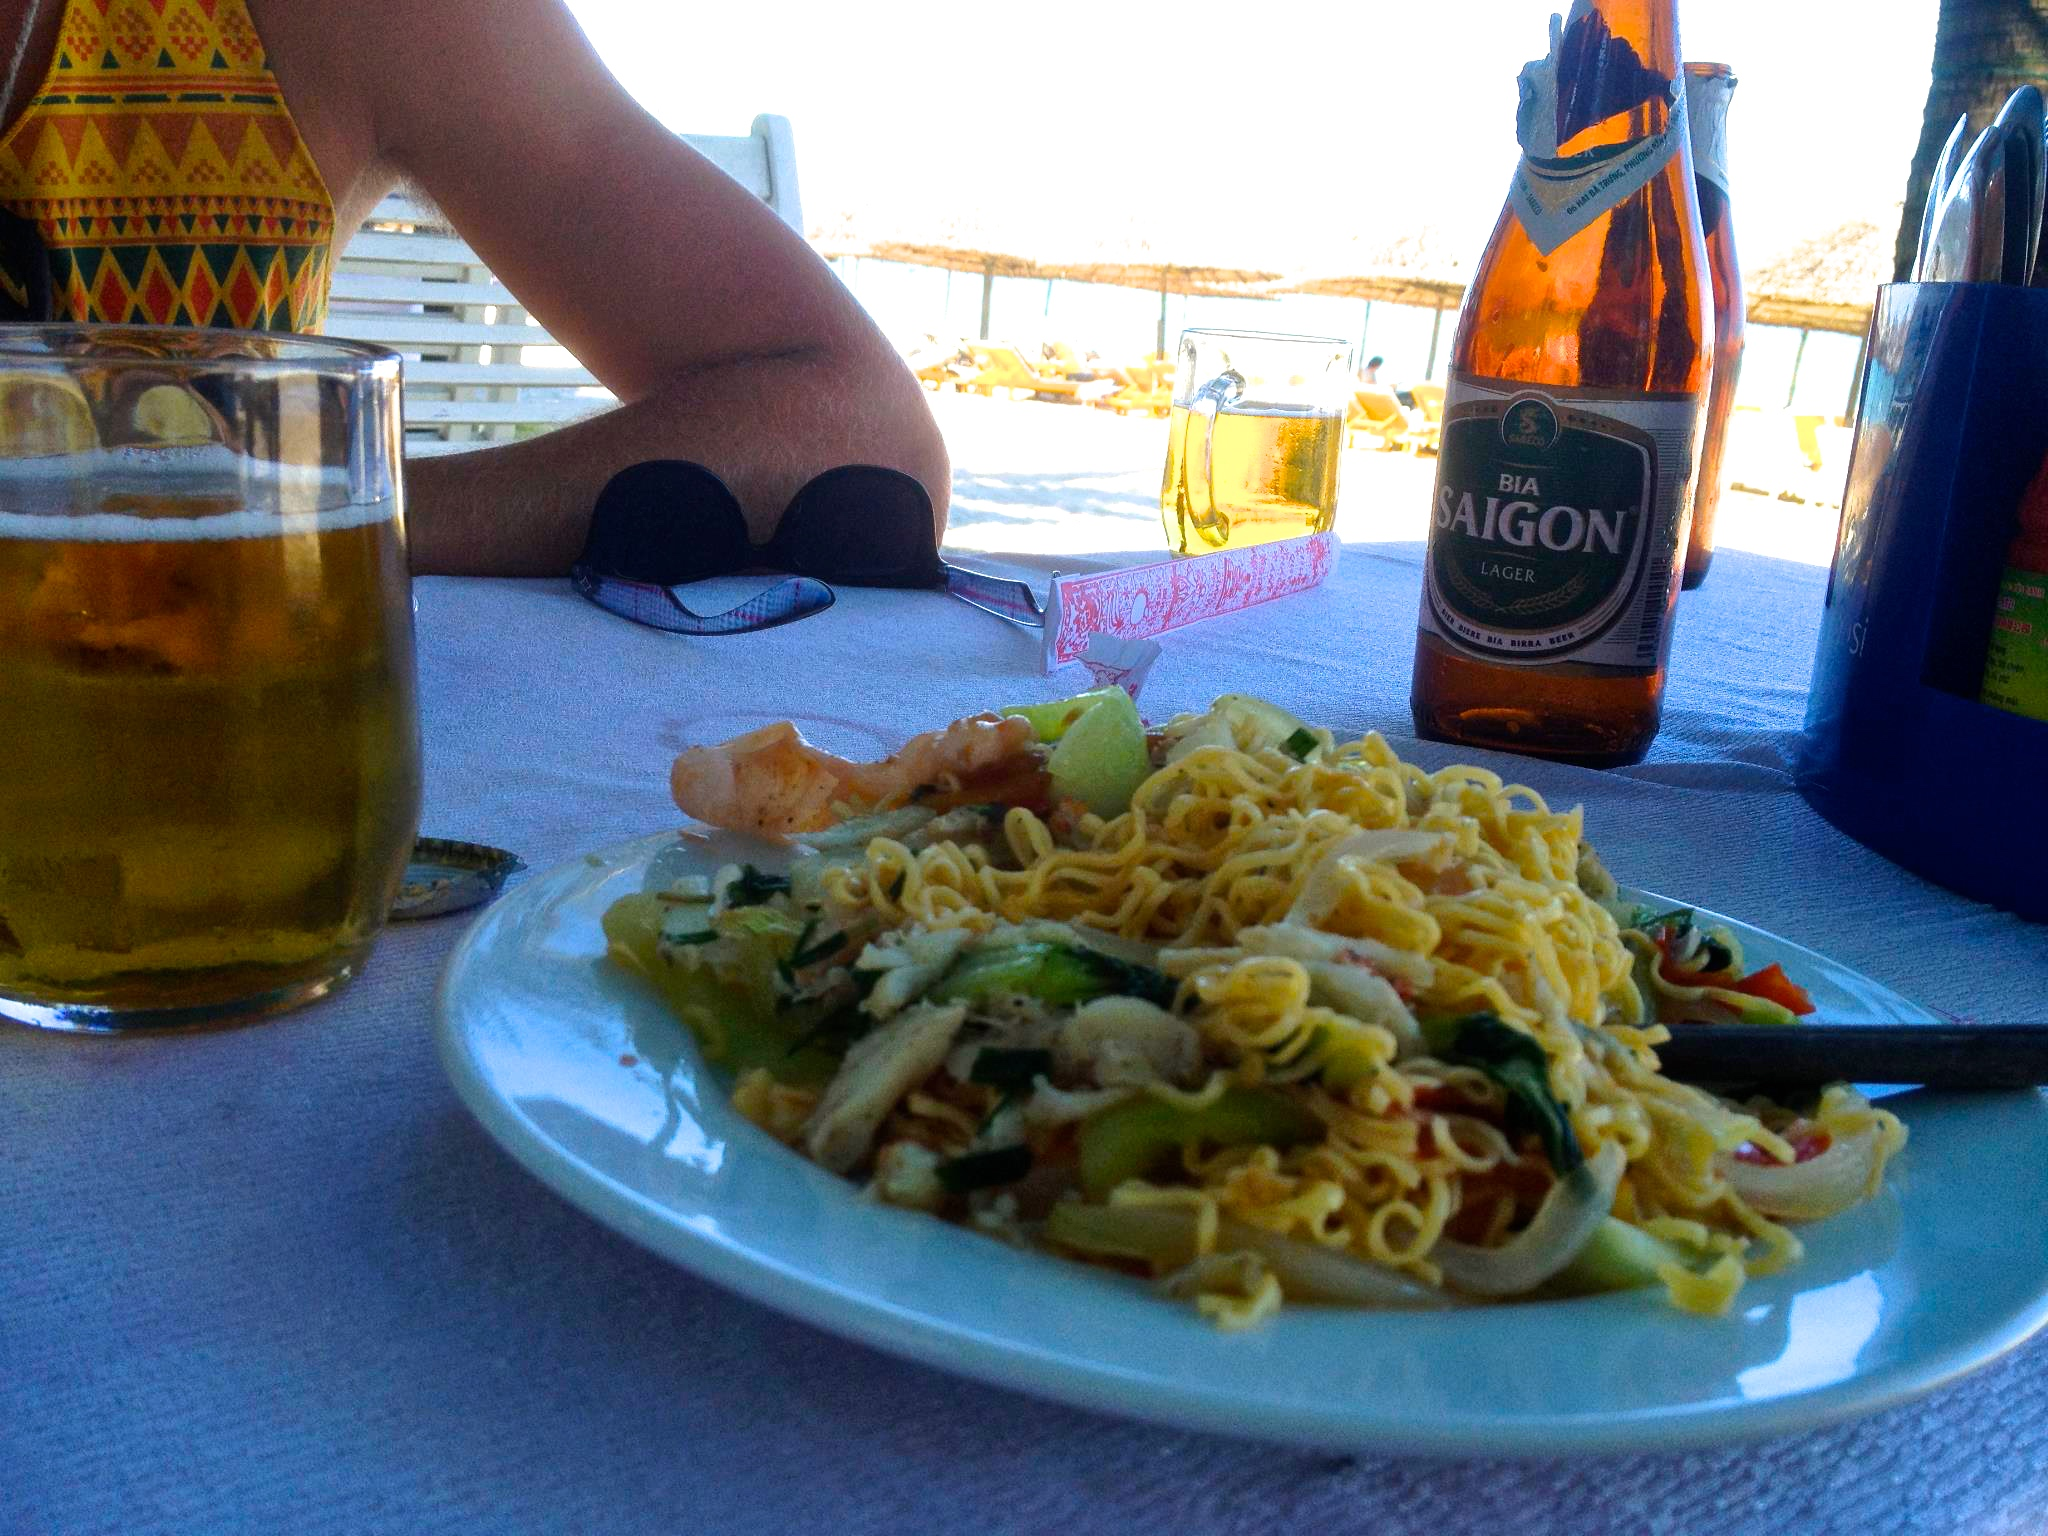 Beachfront seafood pasta lunch w/ beer in Hoi An - $3